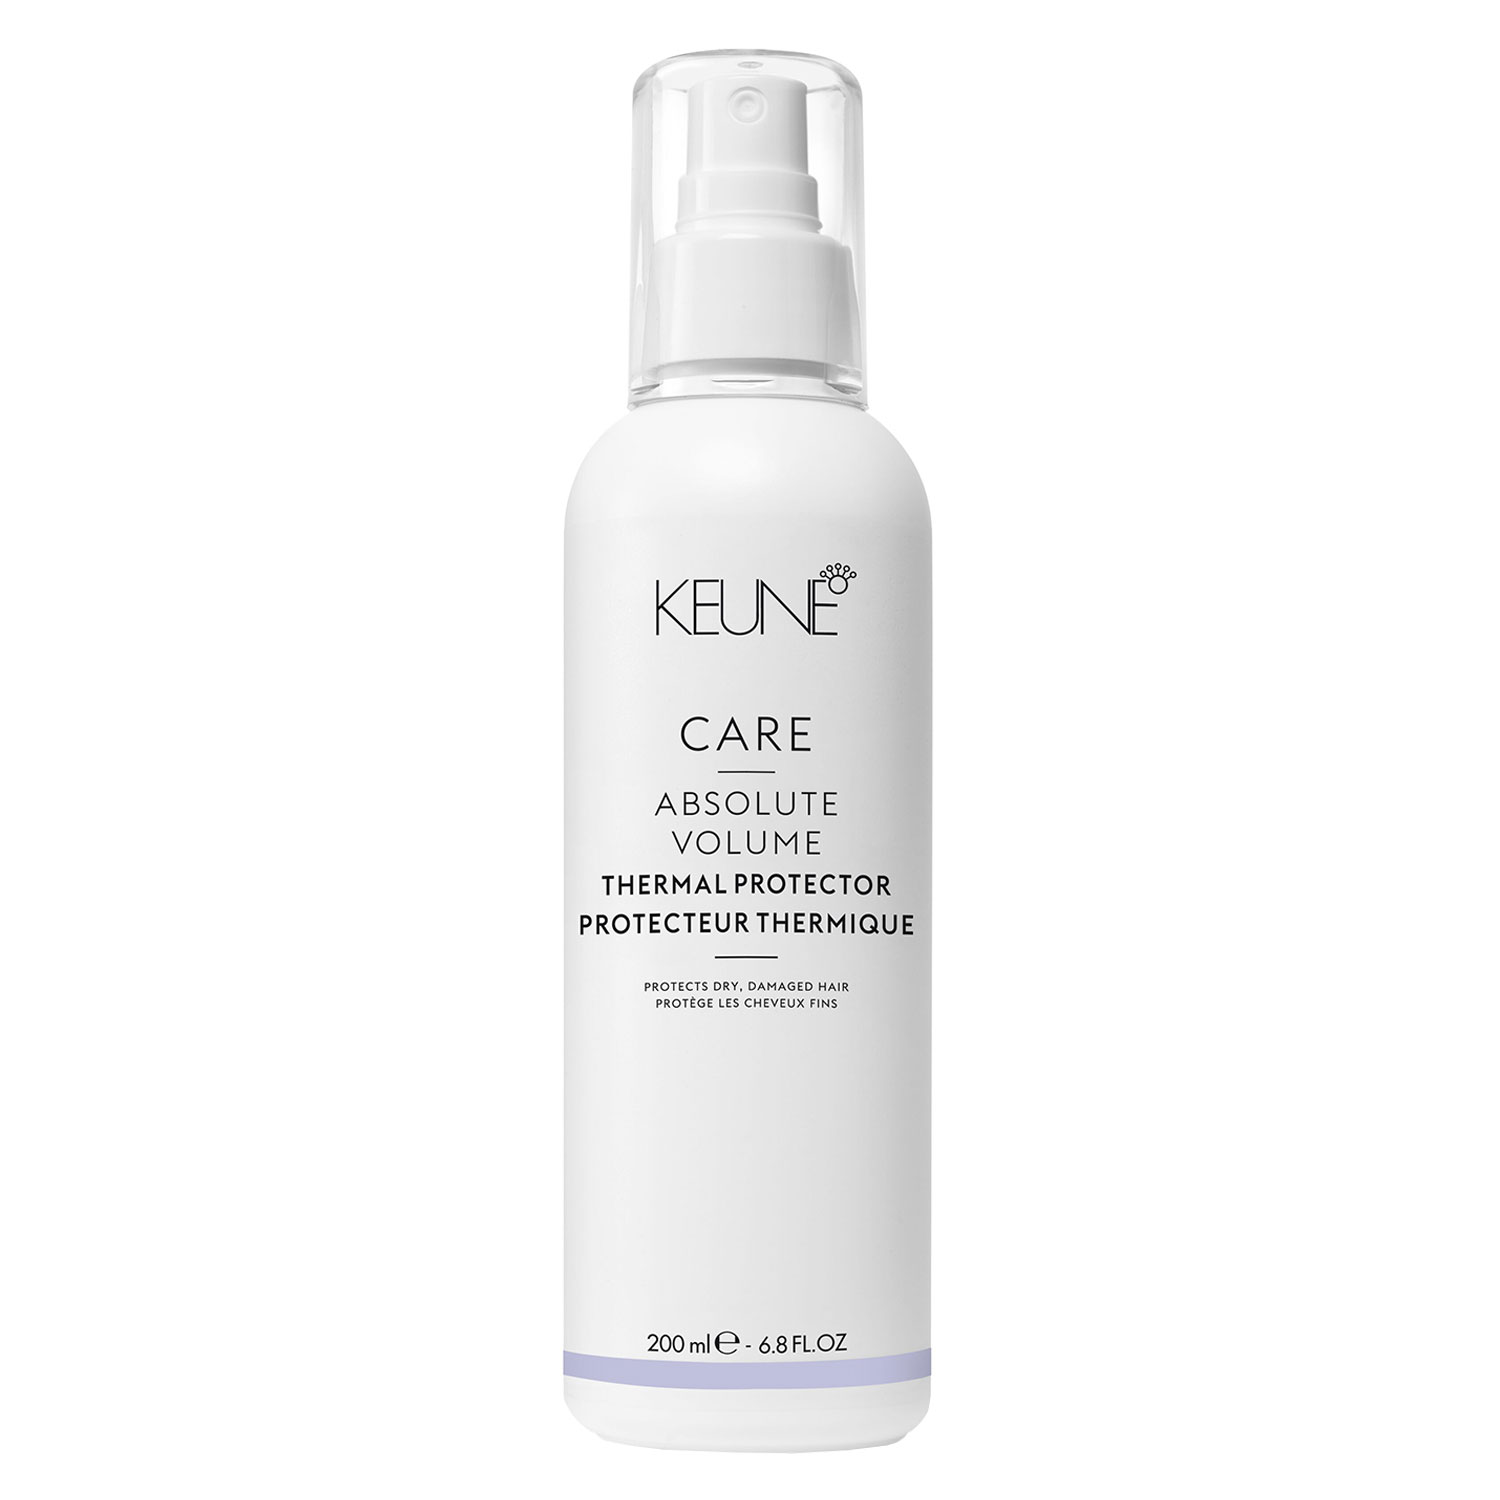 Keune Care - Absolute Volume Thermal Protector